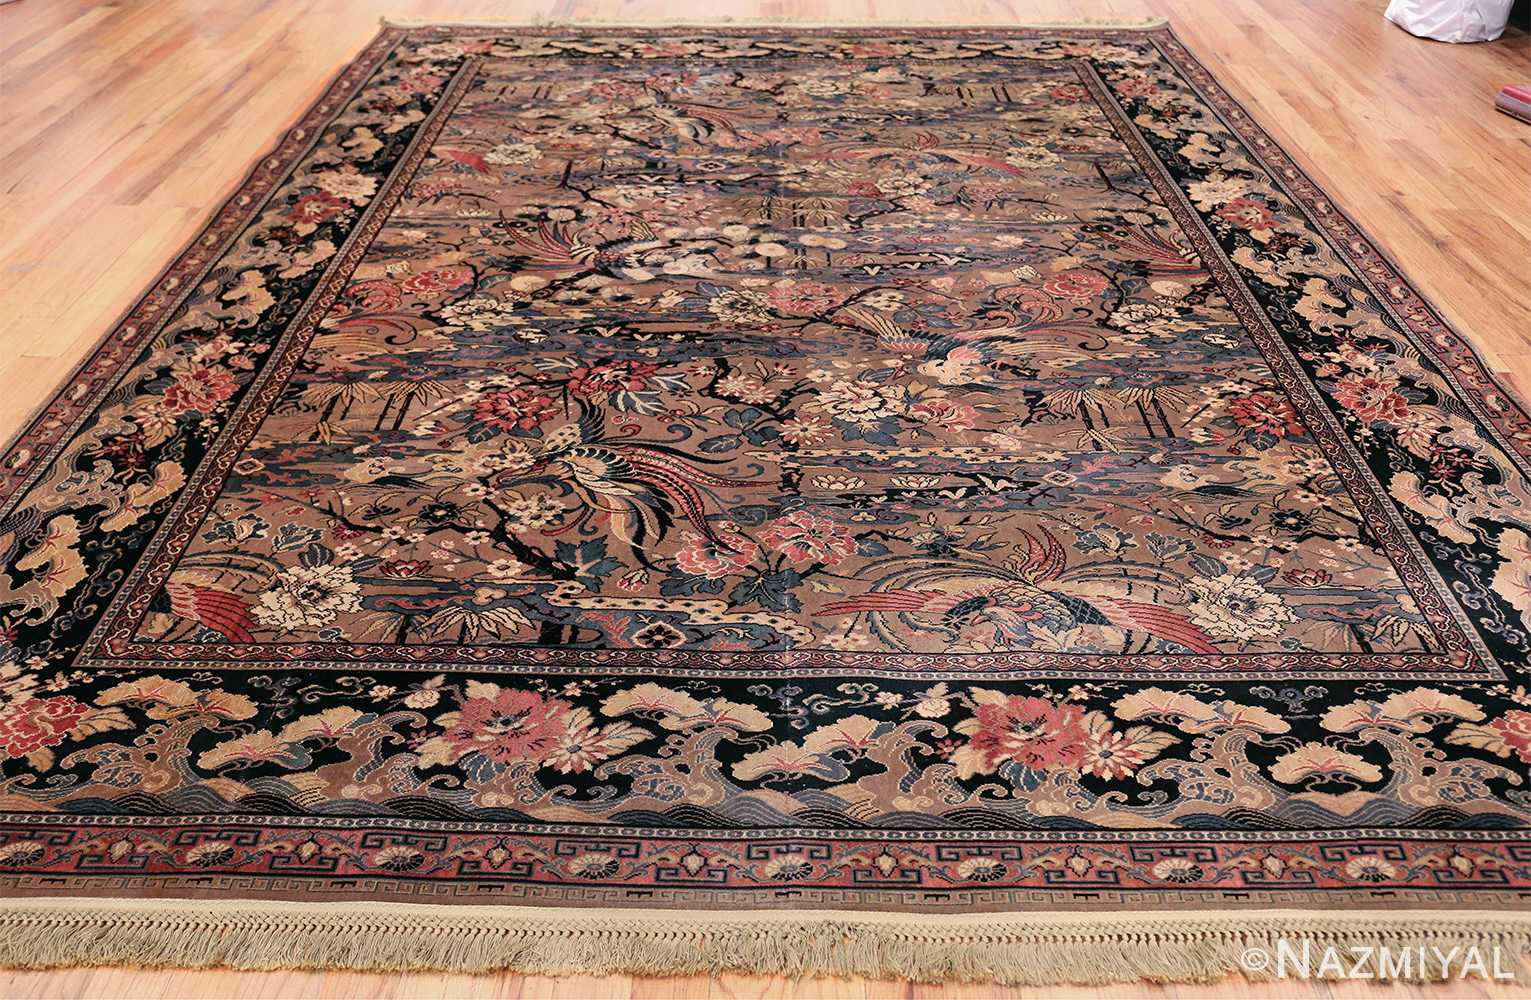 Vintage Birds Of Paradise English Wilton Rug 49815 By Nazmiyal